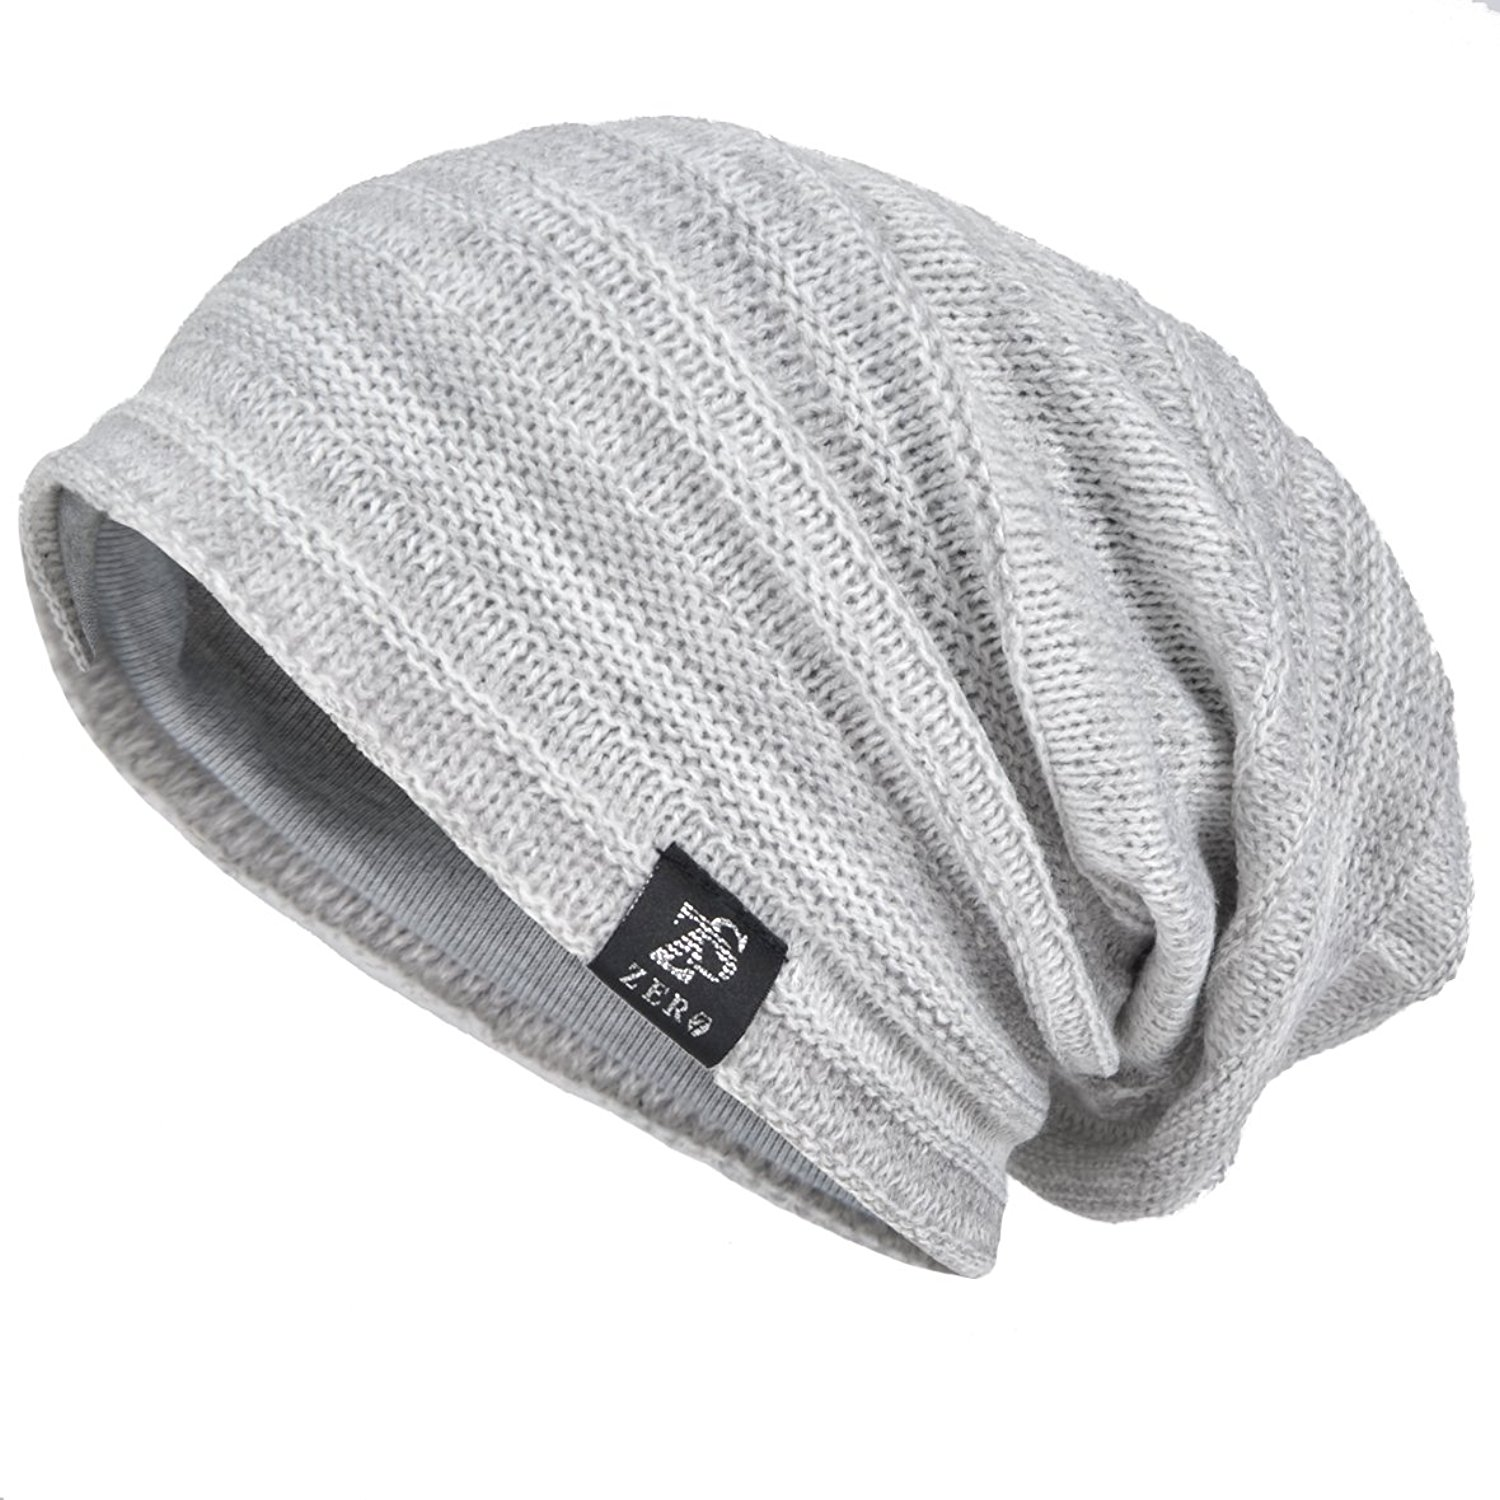 0401ce9d703 Get Quotations · VECRY Mens Slouchy Knit Oversized Beanie Skull Caps Hat